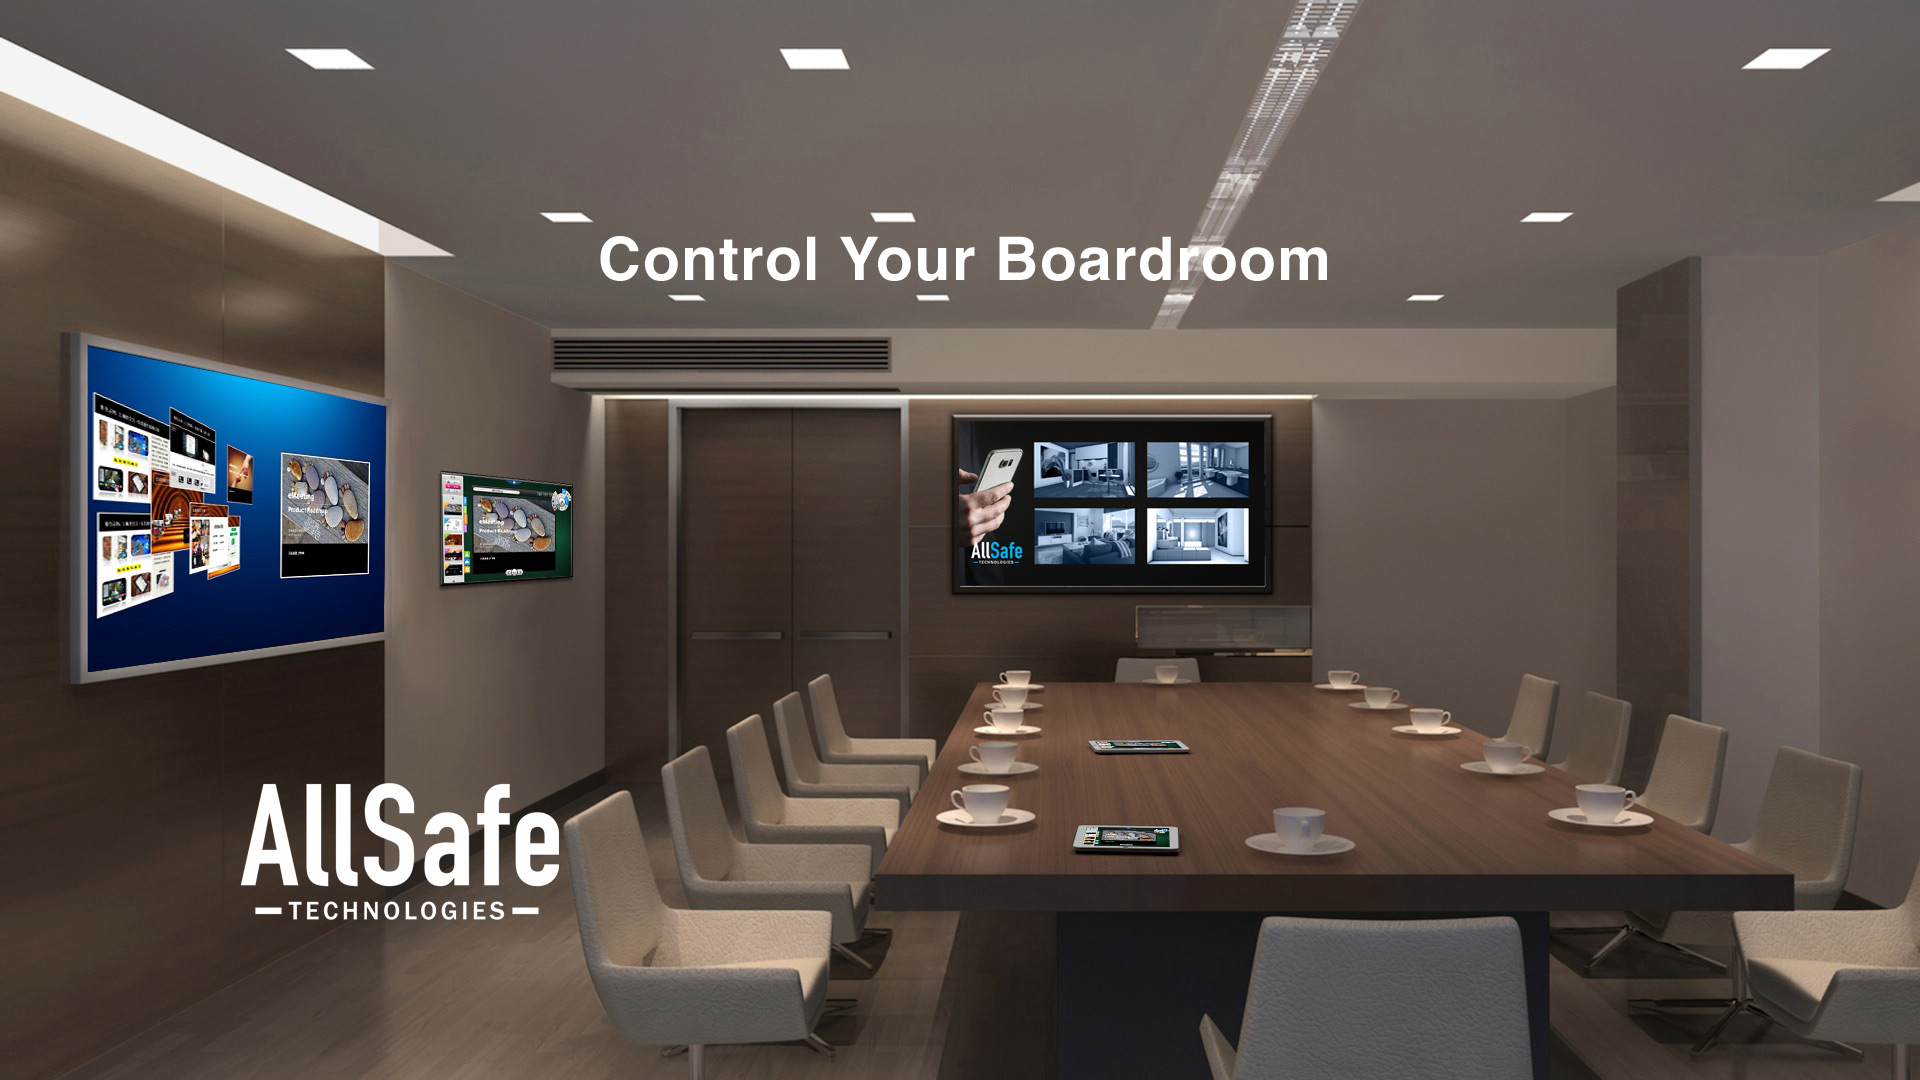 Control the Boardroom